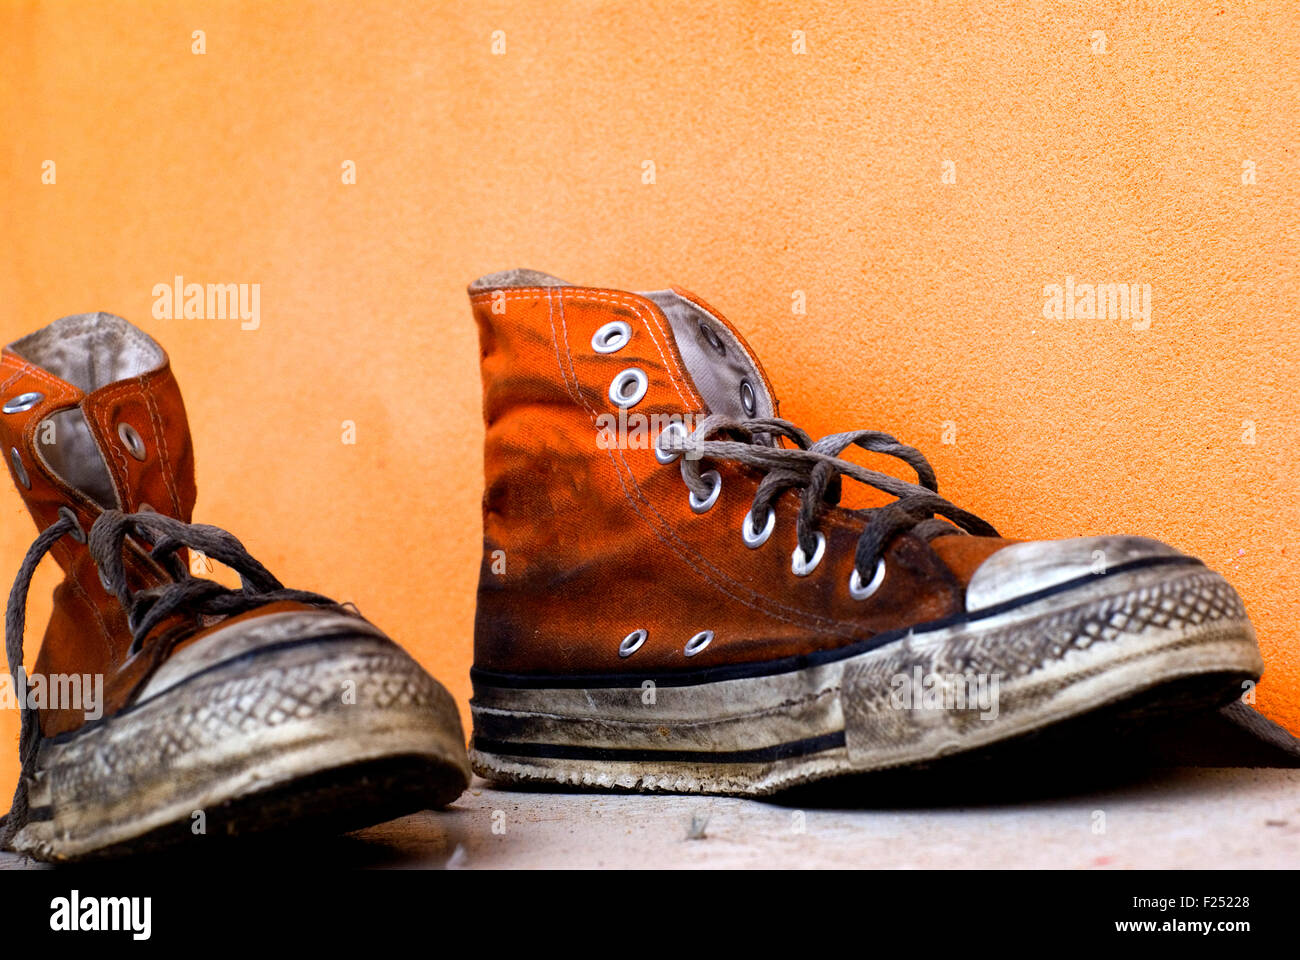 94b04fb69870 Old used and soiled orange Converse All Star shoes on an orange background  - Stock Image